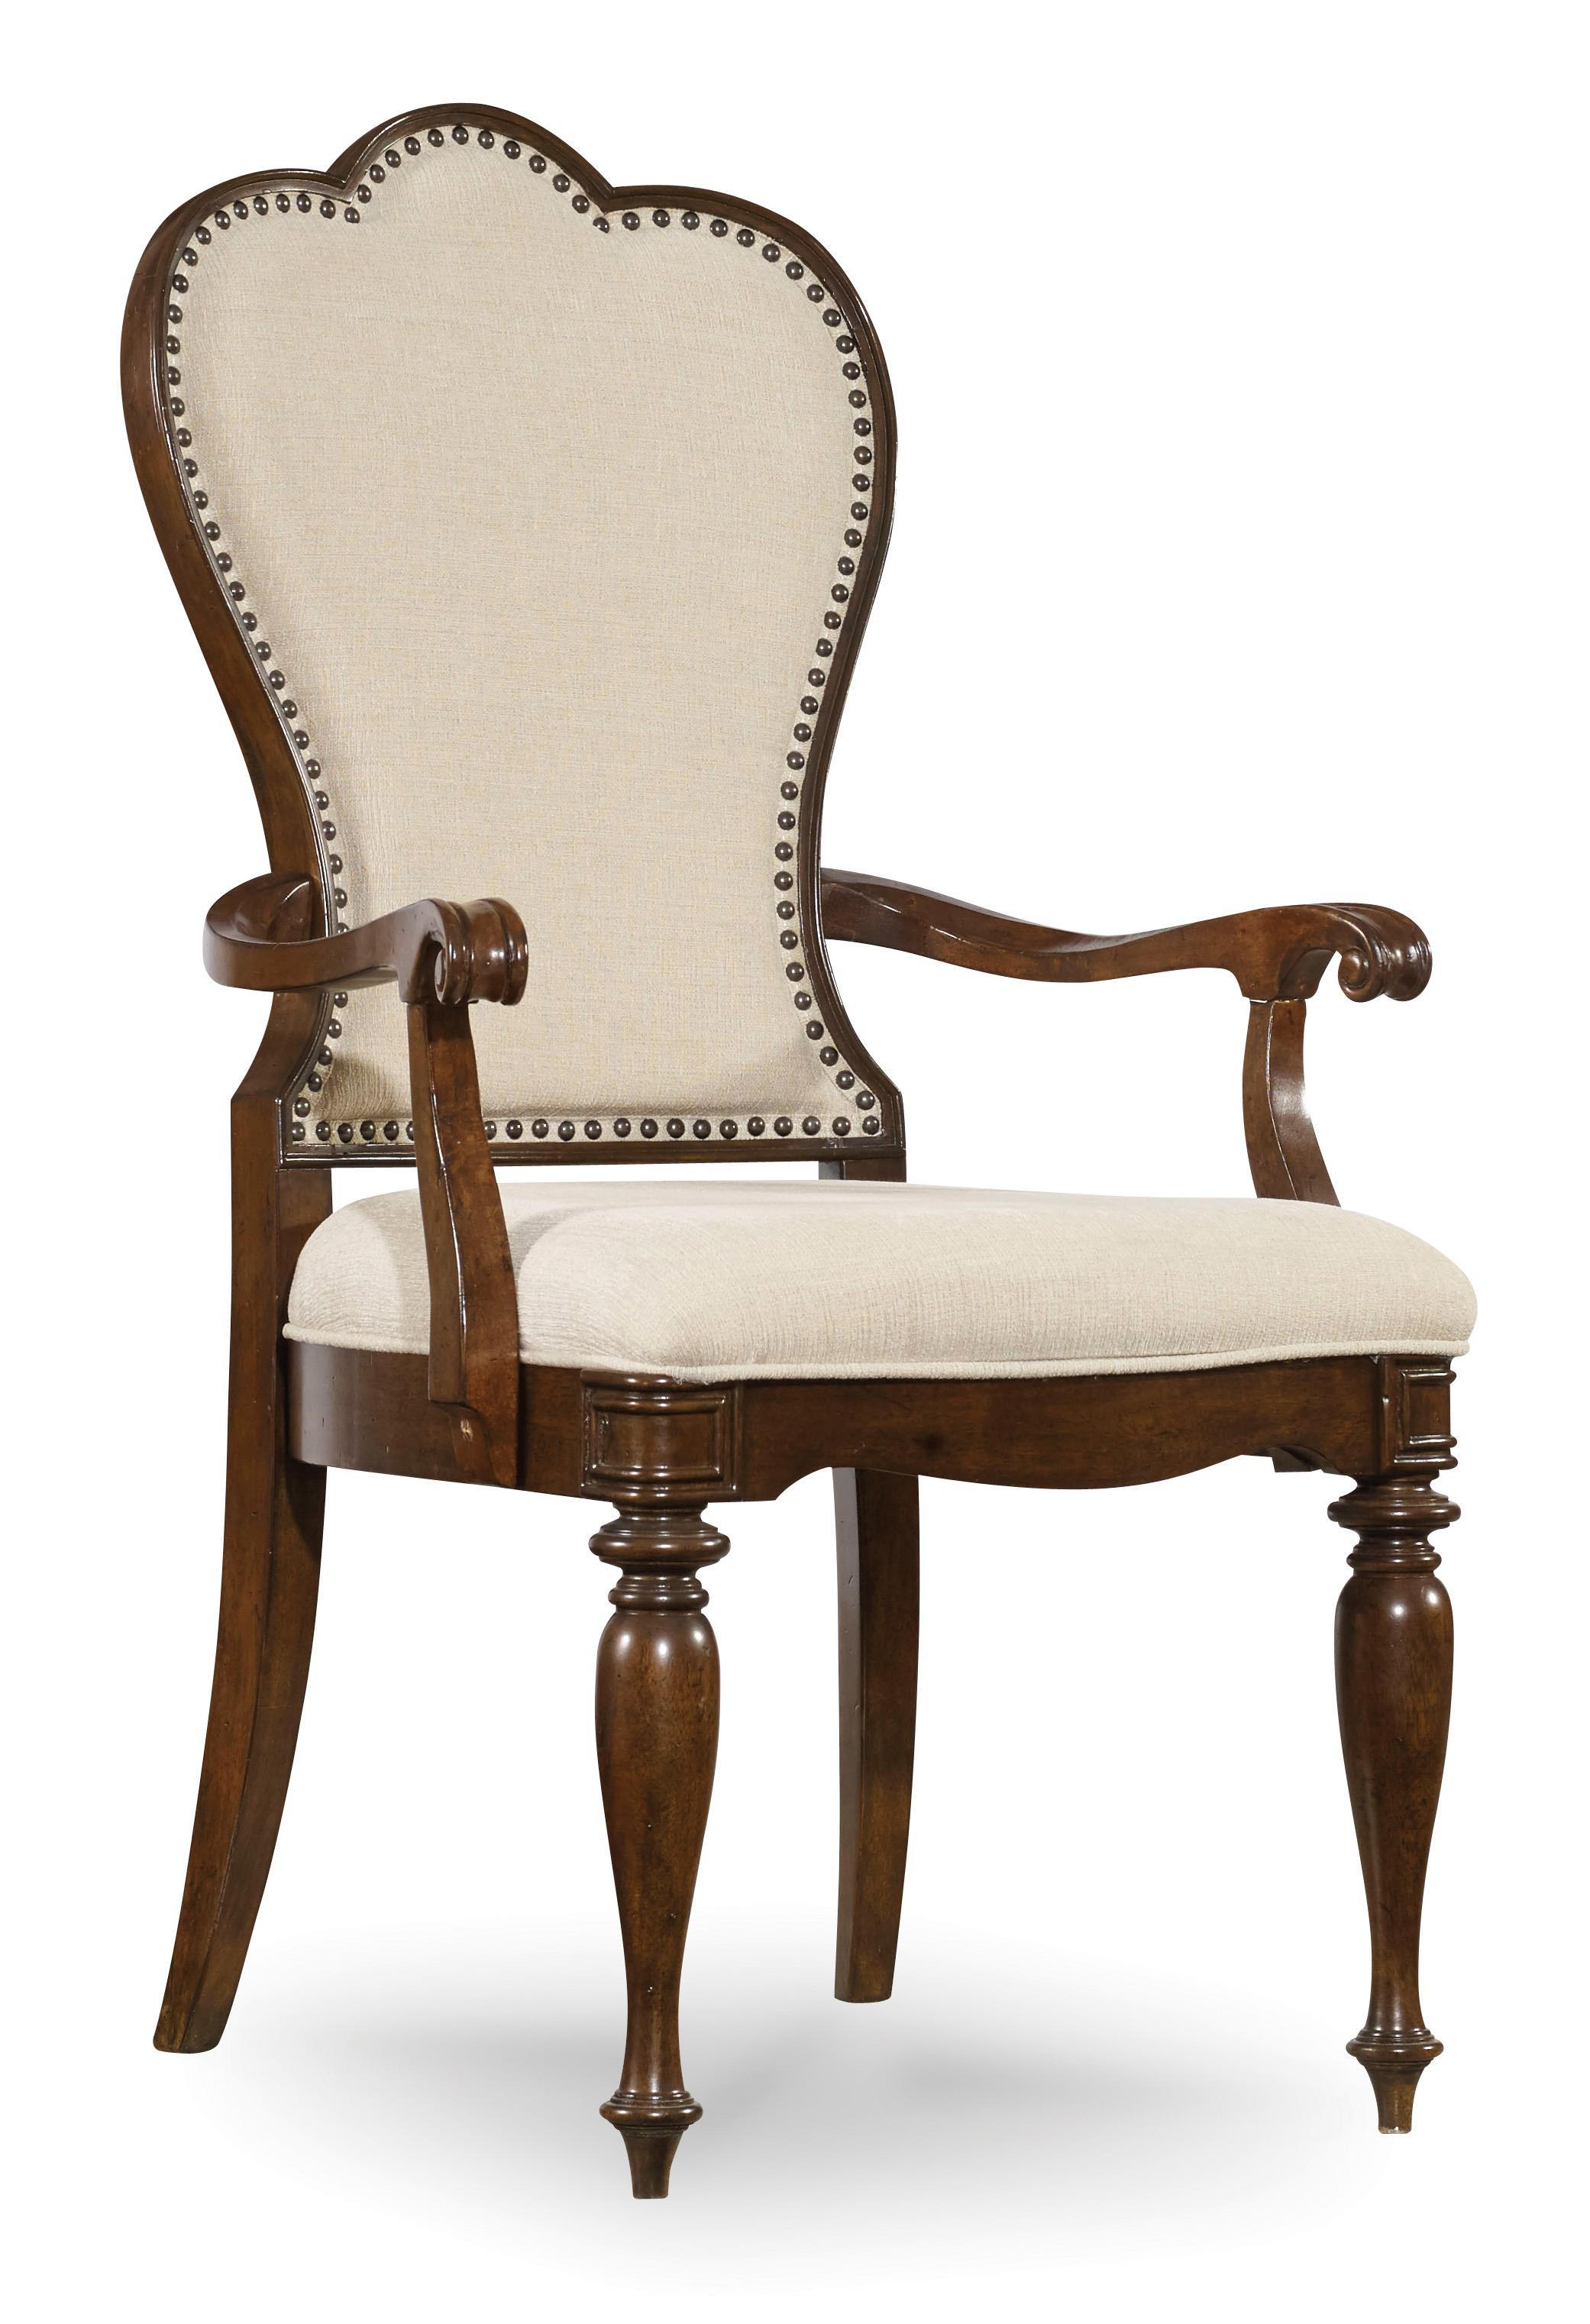 Upholstered Arm Chairs Hooker Furniture Leesburg Upholstered Arm Chair With Nail